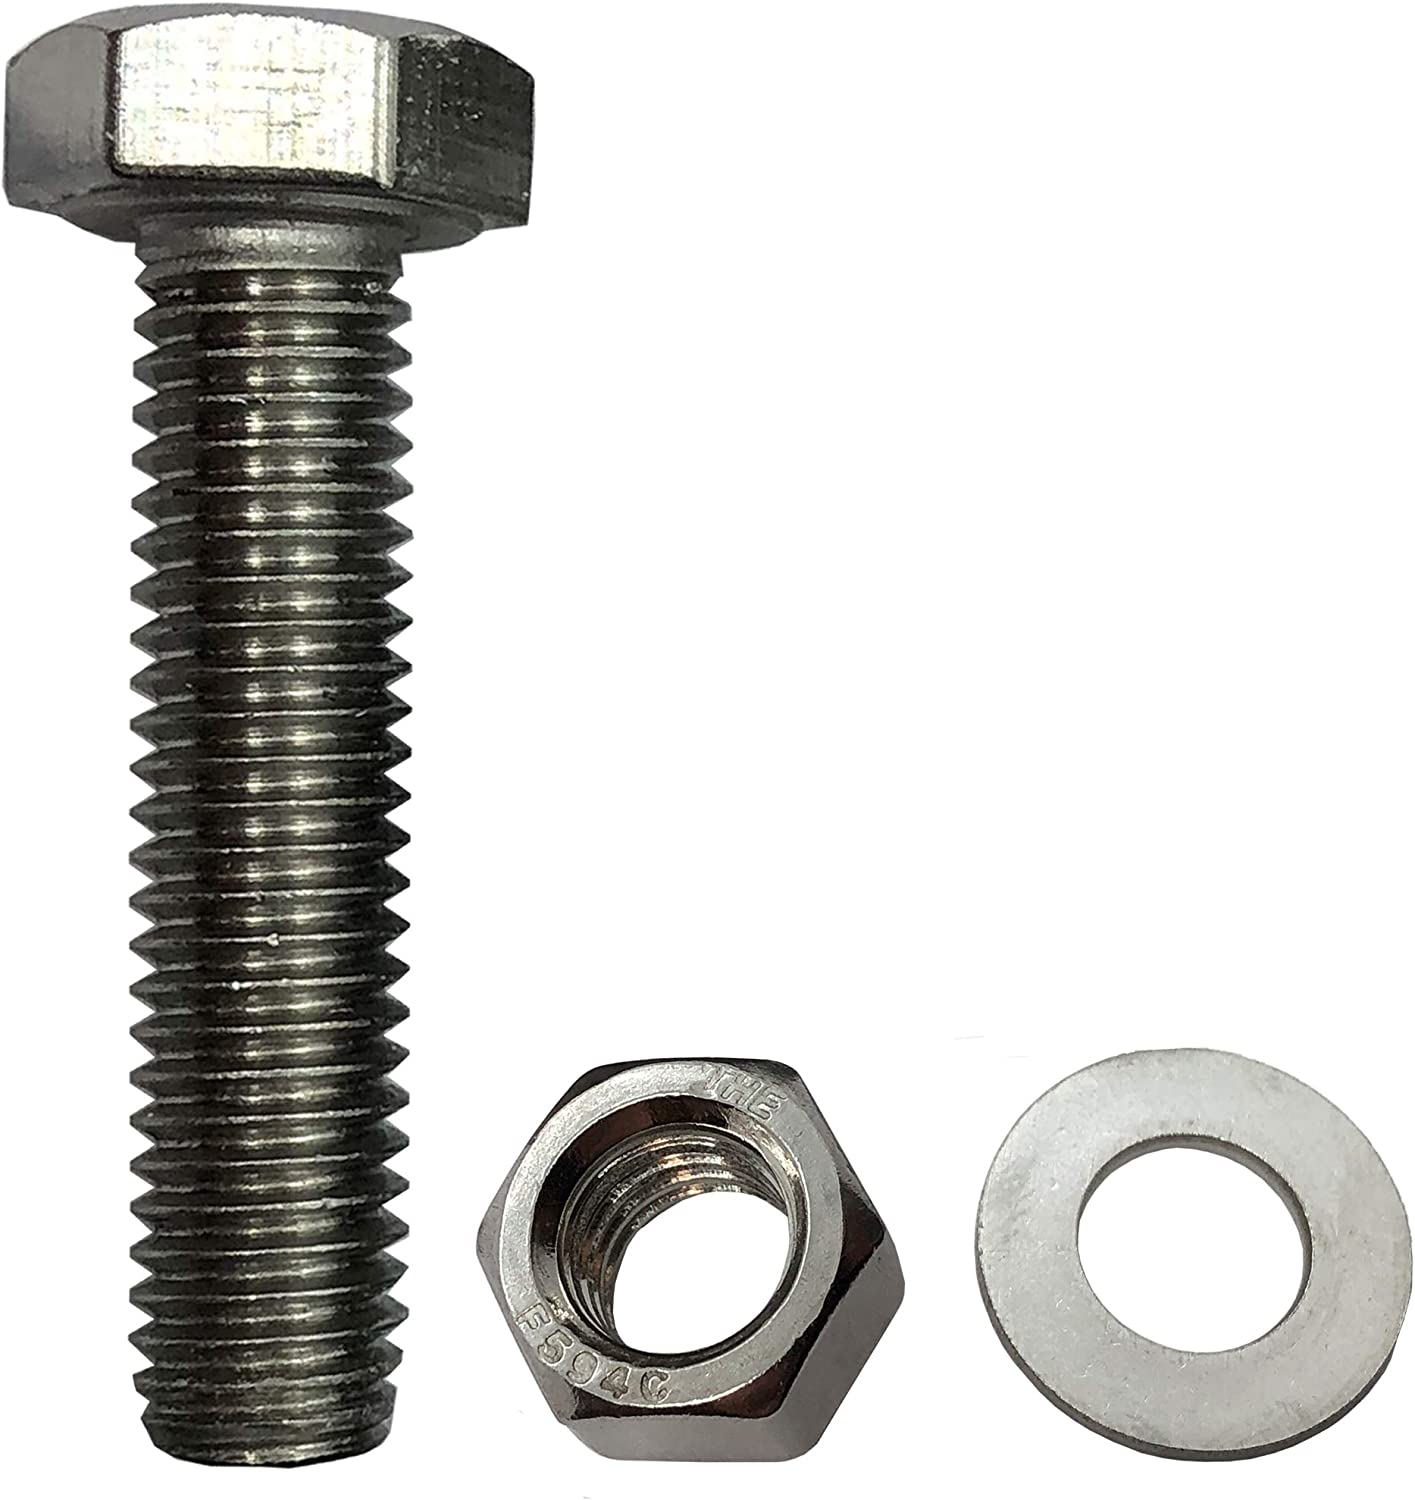 3//8-16 X 3 Hex Tap Bolt 316 Stainless Steel Package Qty 100